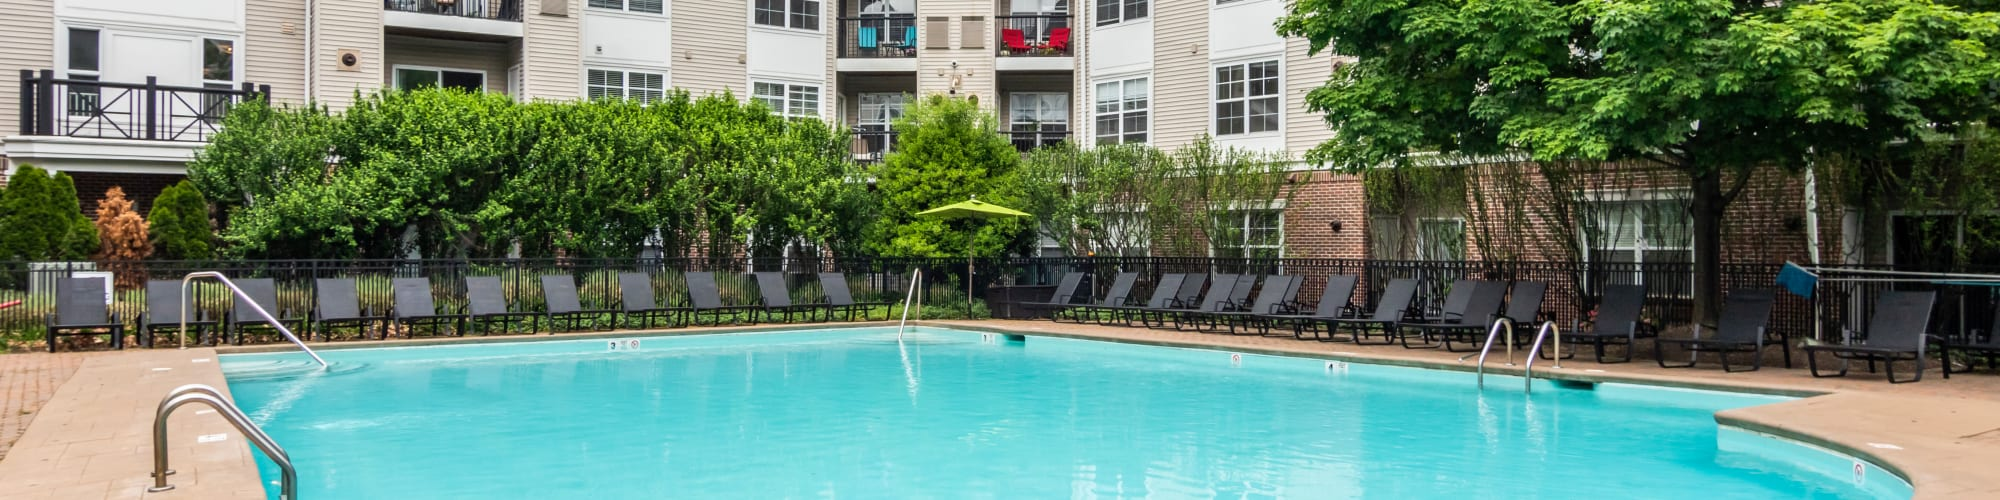 Amenities at Sofi Parc Grove in Stamford, Connecticut